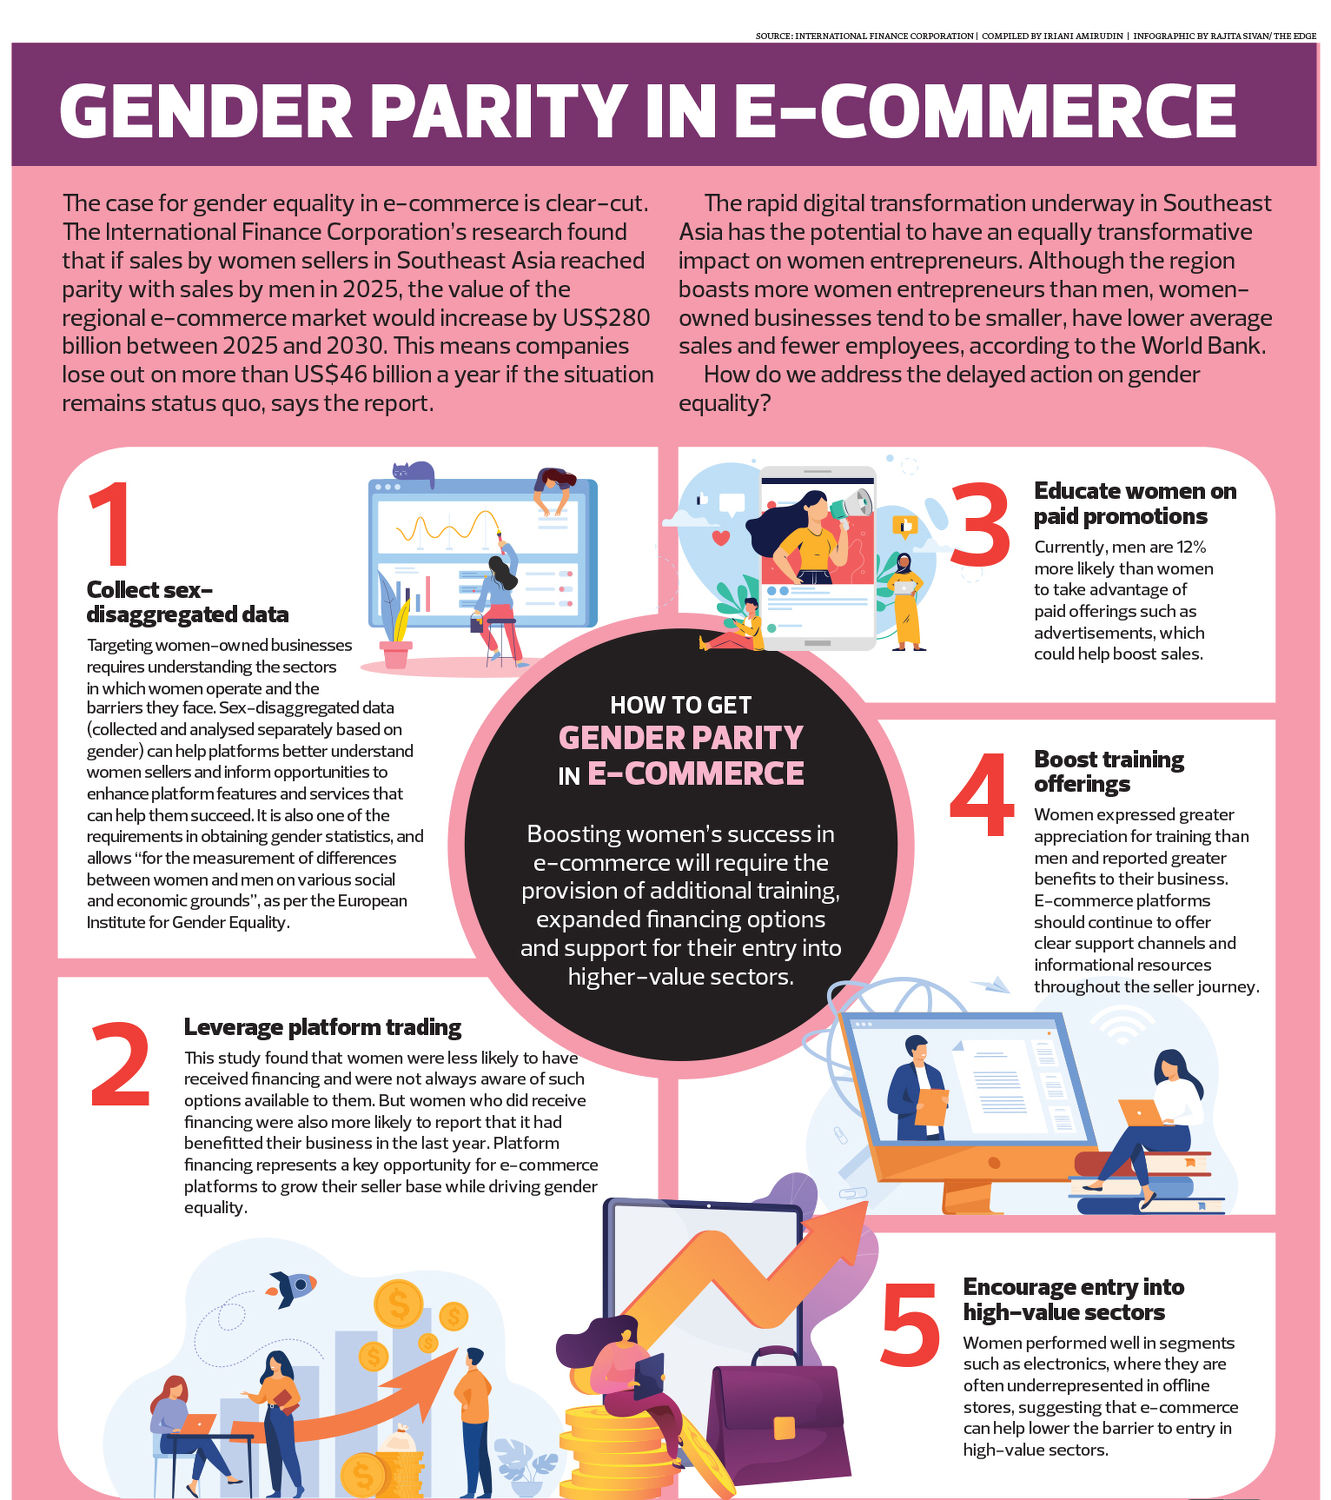 Gender Parity in ecommerce infographic - THE EDGE SINGAPORE